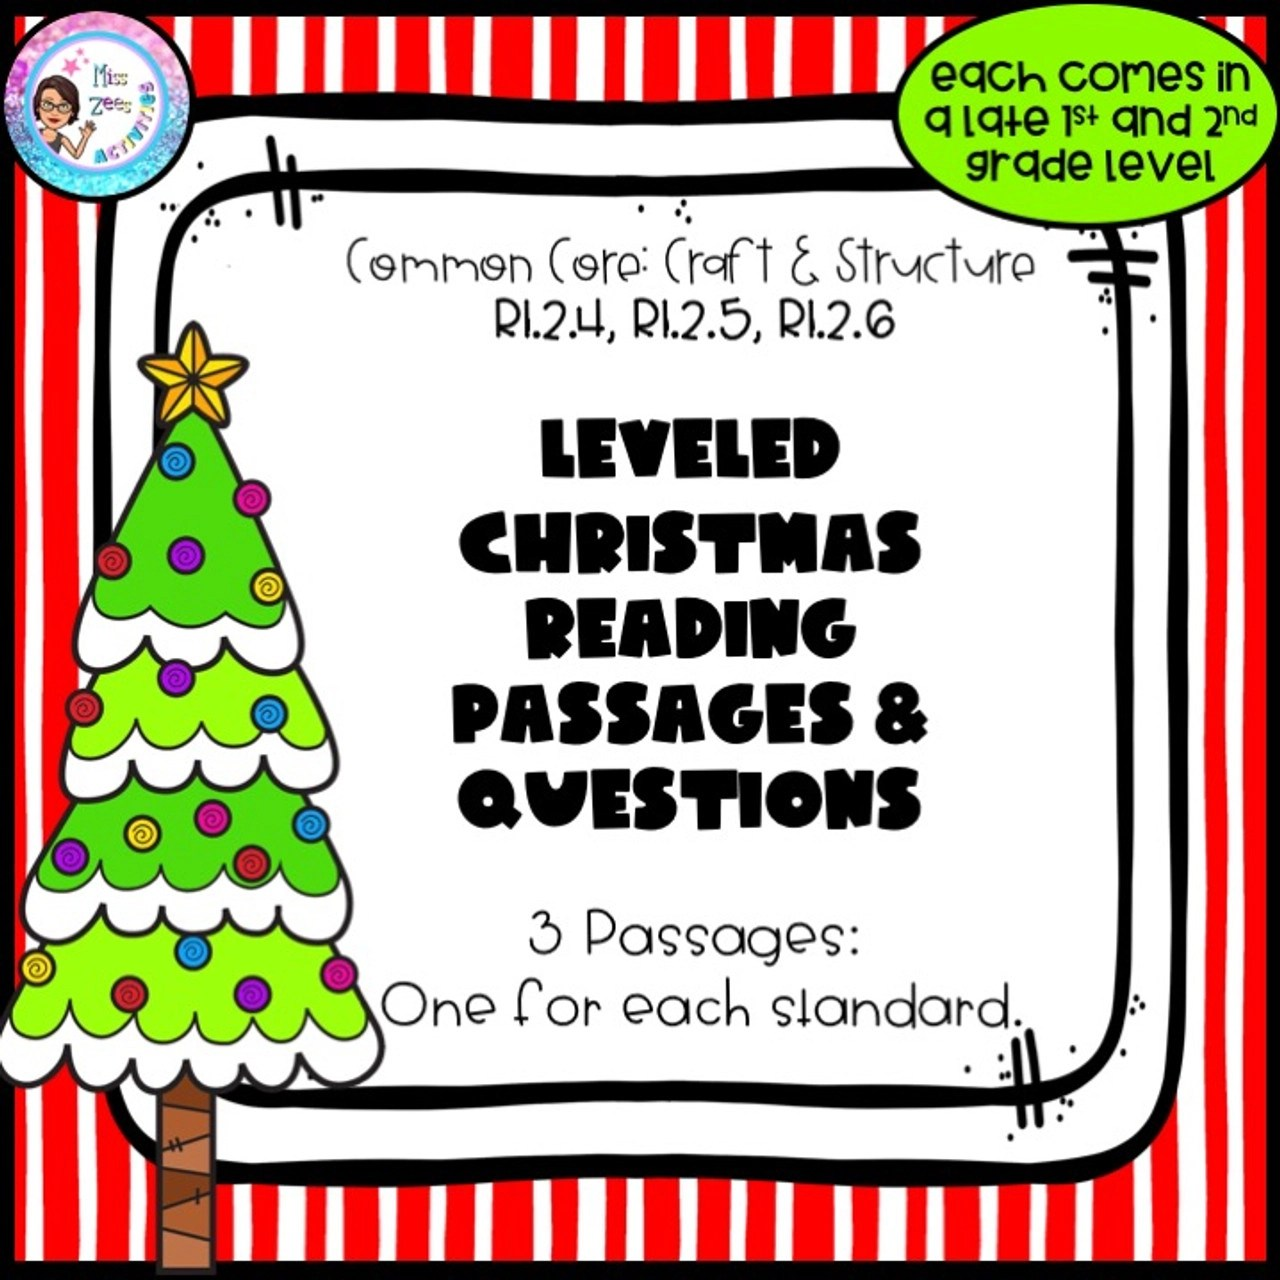 hight resolution of 3 Leveled Christmas Reading Passages and Questions - Craft and Structure -  Amped Up Learning